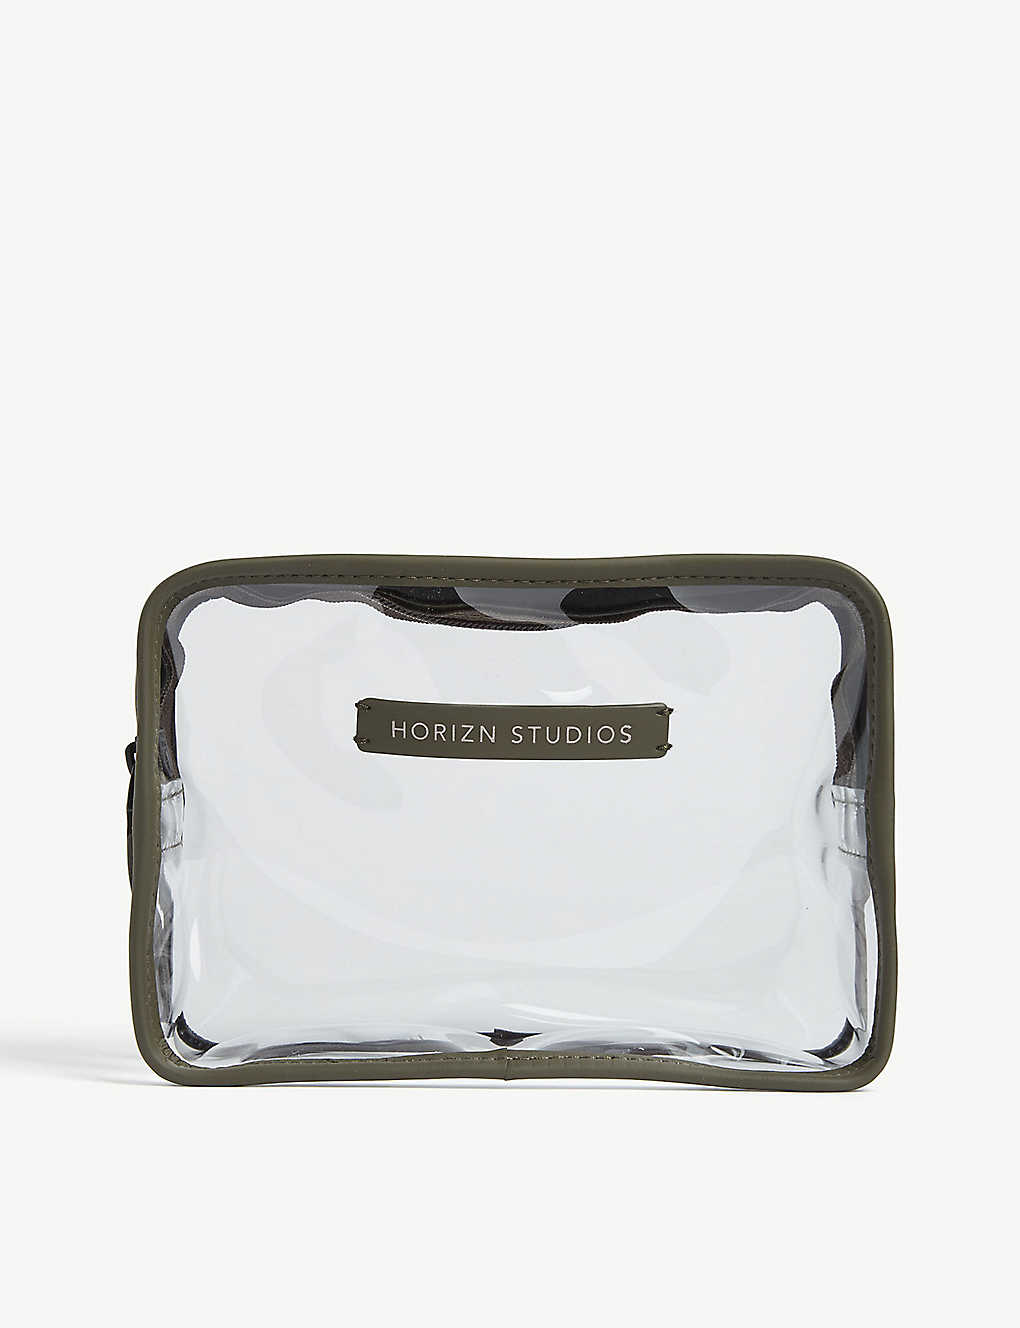 HORIZN STUDIOS: Transparent liquids bag